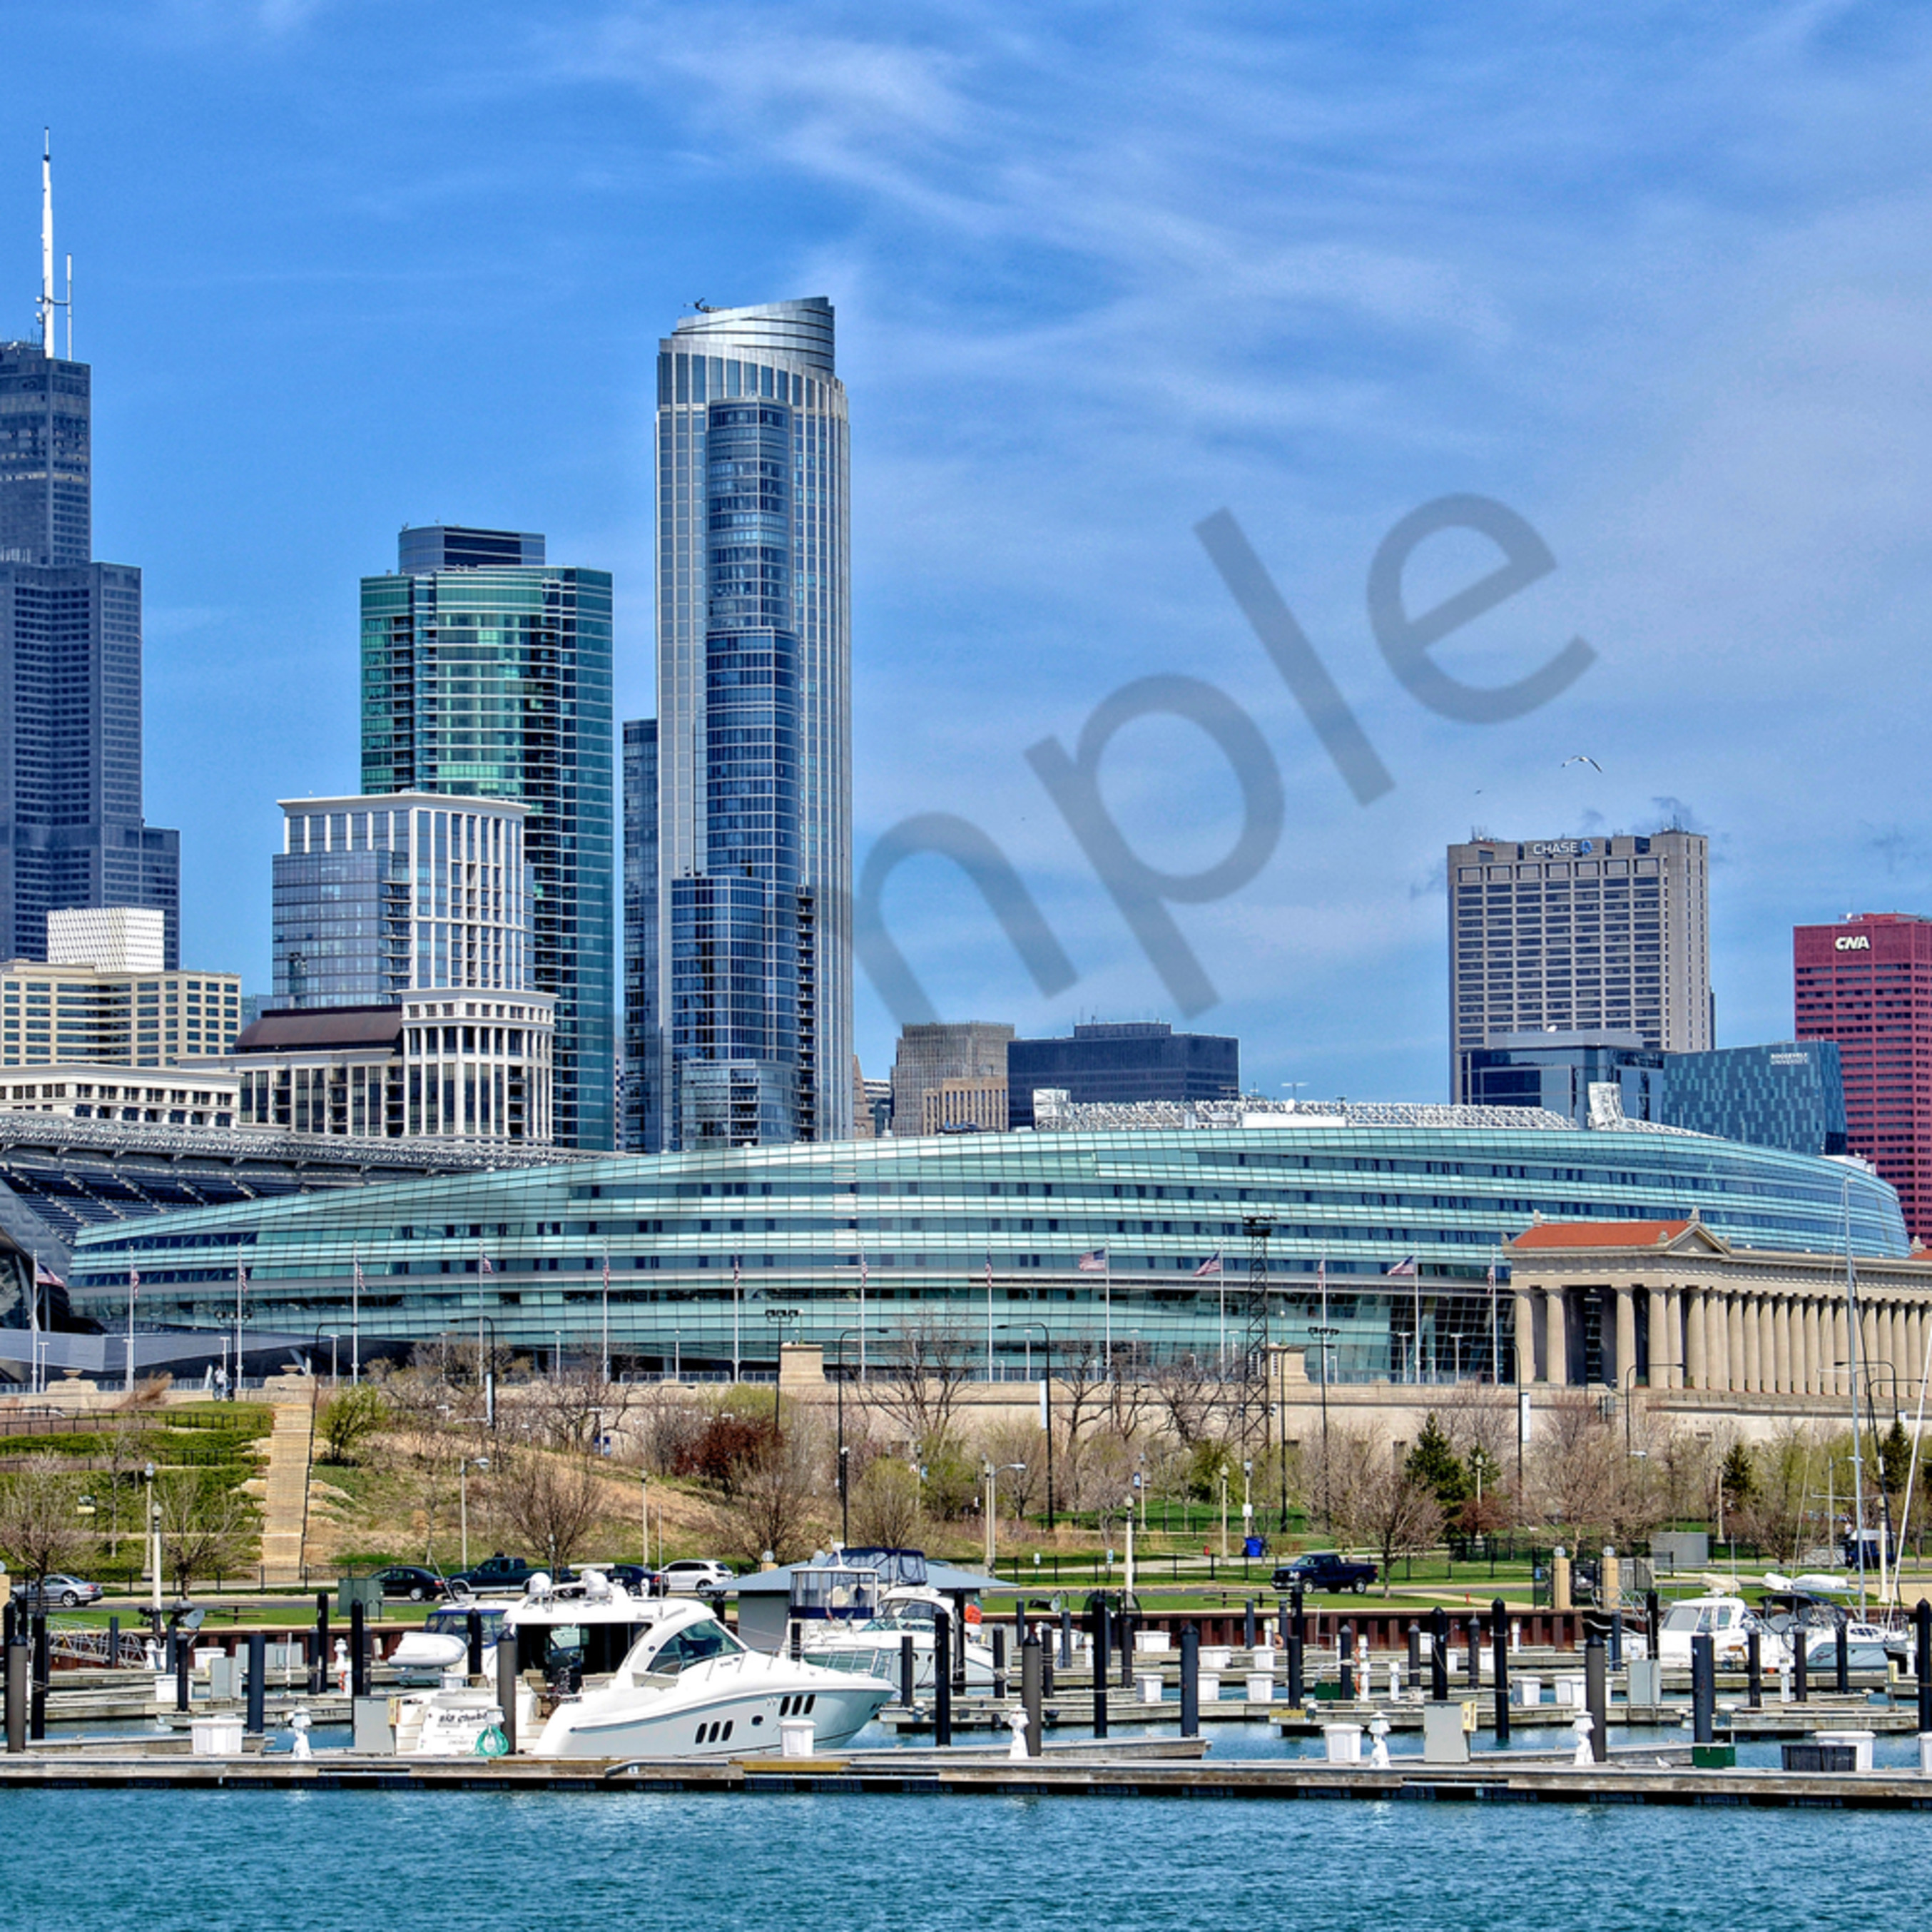 Final chicago panoramic soldier cityscape z1yaqb